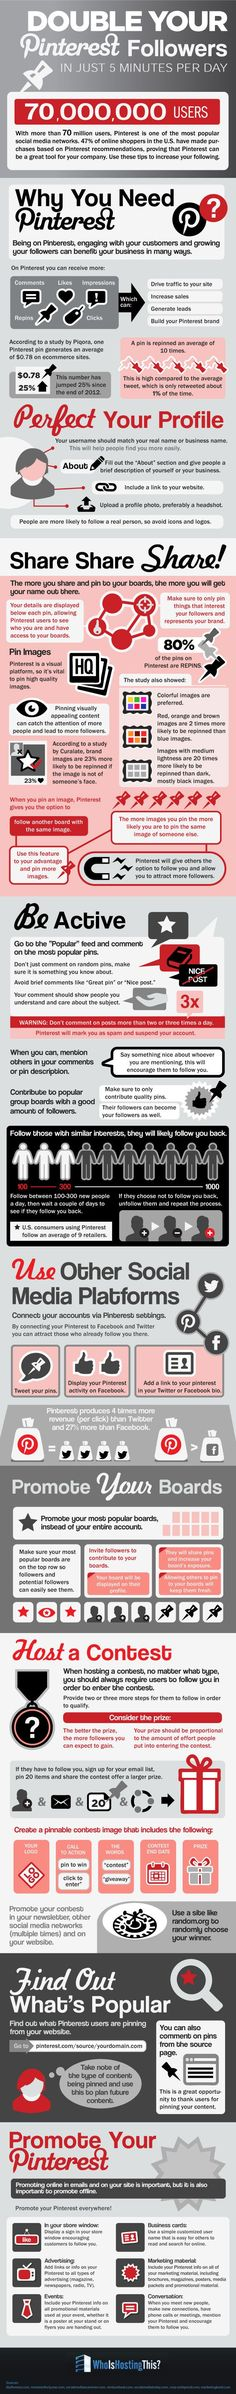 How To increase your #Pinterest followers in just 5 Minutes per day - #infographic #socialmedia